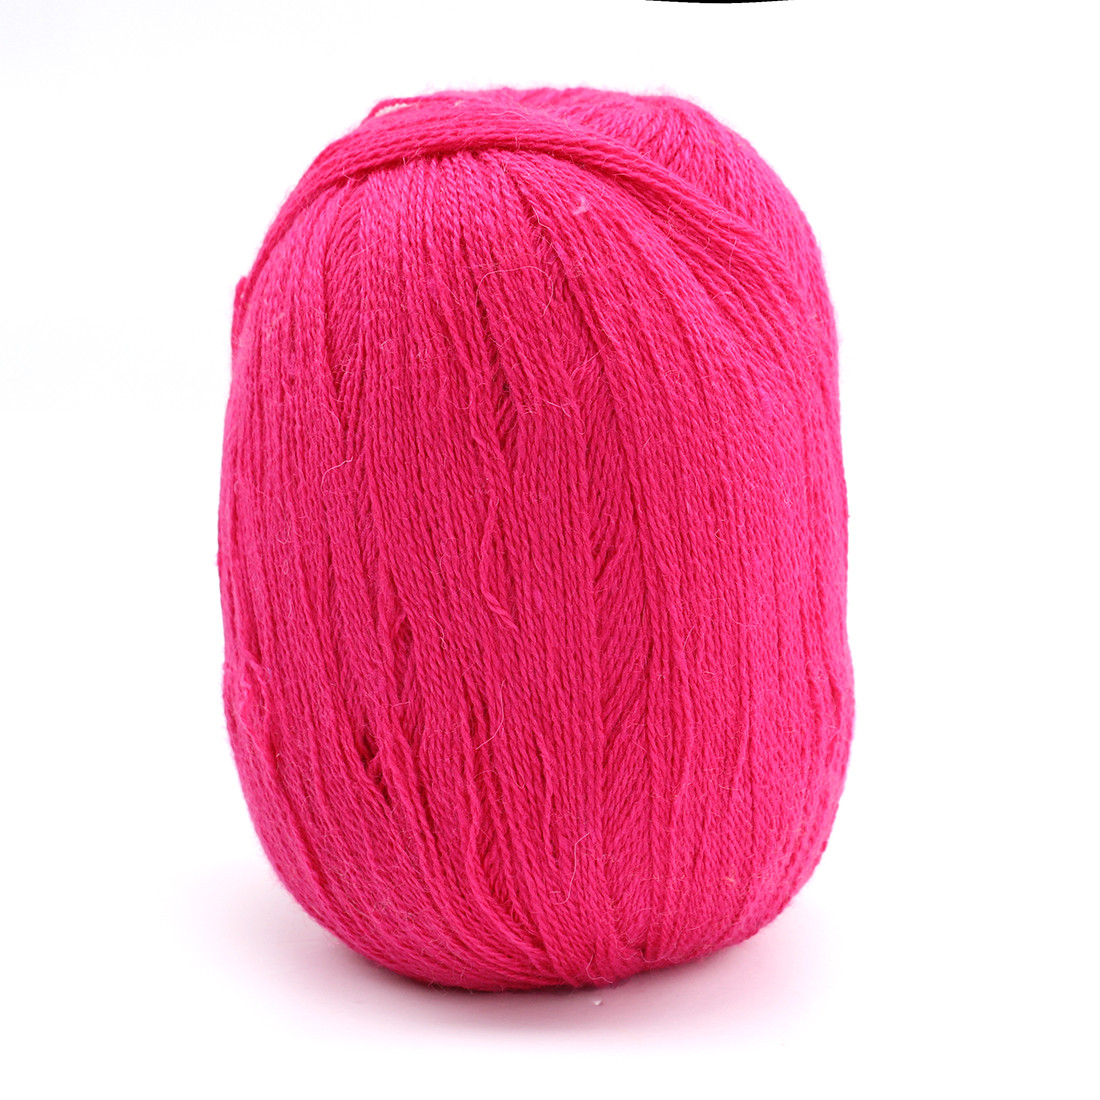 Cashmere Yarn for Sale New Cashmere soft Knitting Weaving Wool Yarn Crocheting Of Perfect 47 Models Cashmere Yarn for Sale